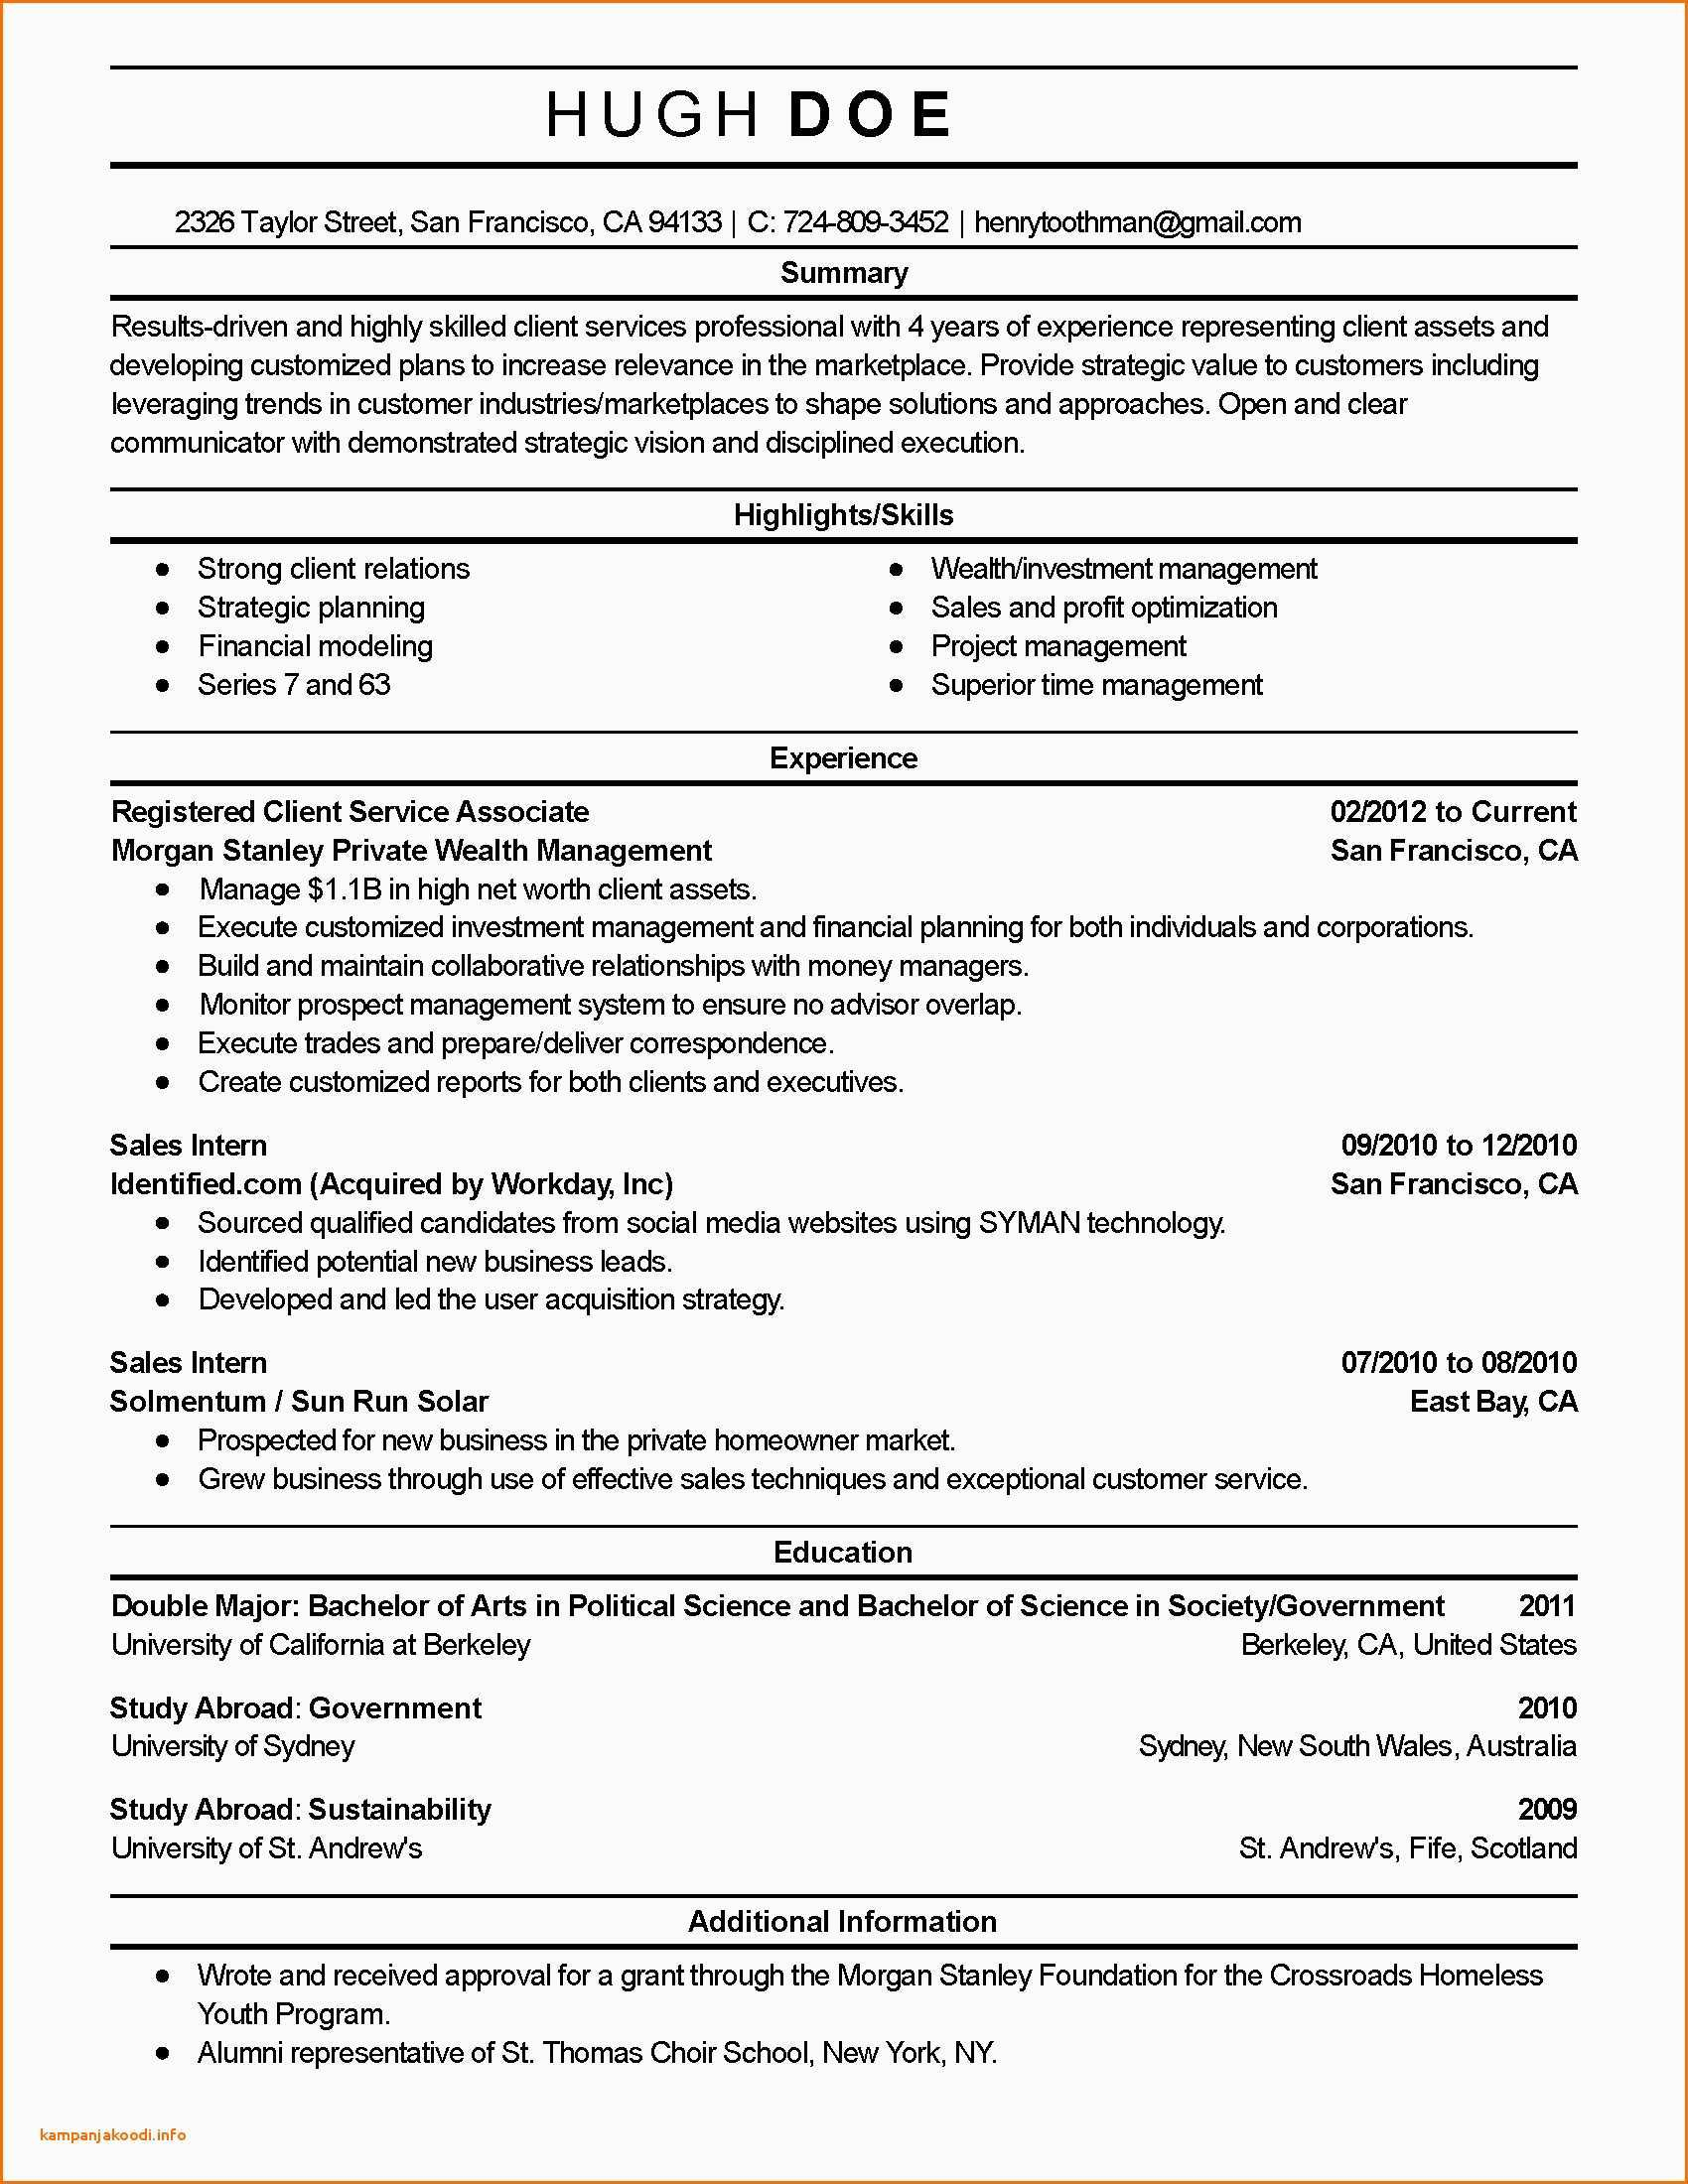 Uc Berkeley Resume Template - Resume 50 Year Old Resume Template for 15 Year Old Nmdnconference